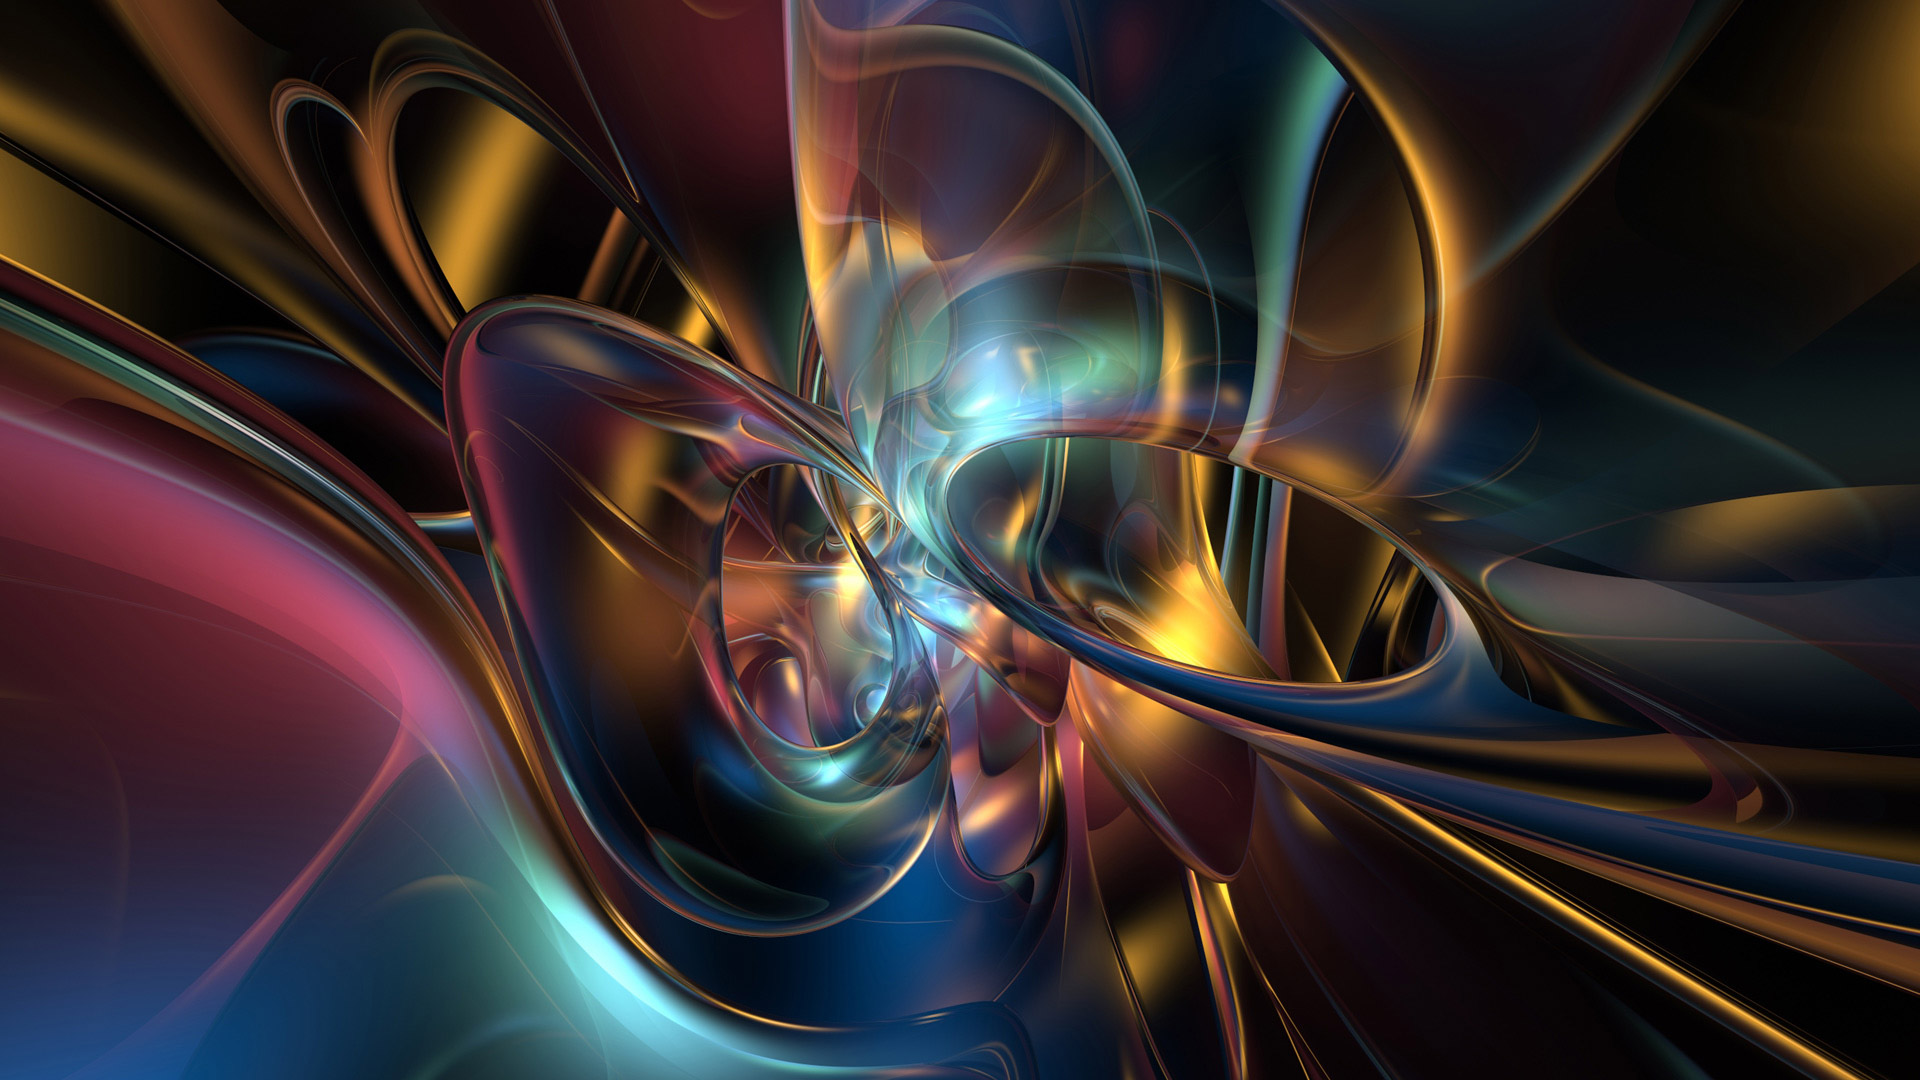 Abstract Design 1080p HD wallpaper